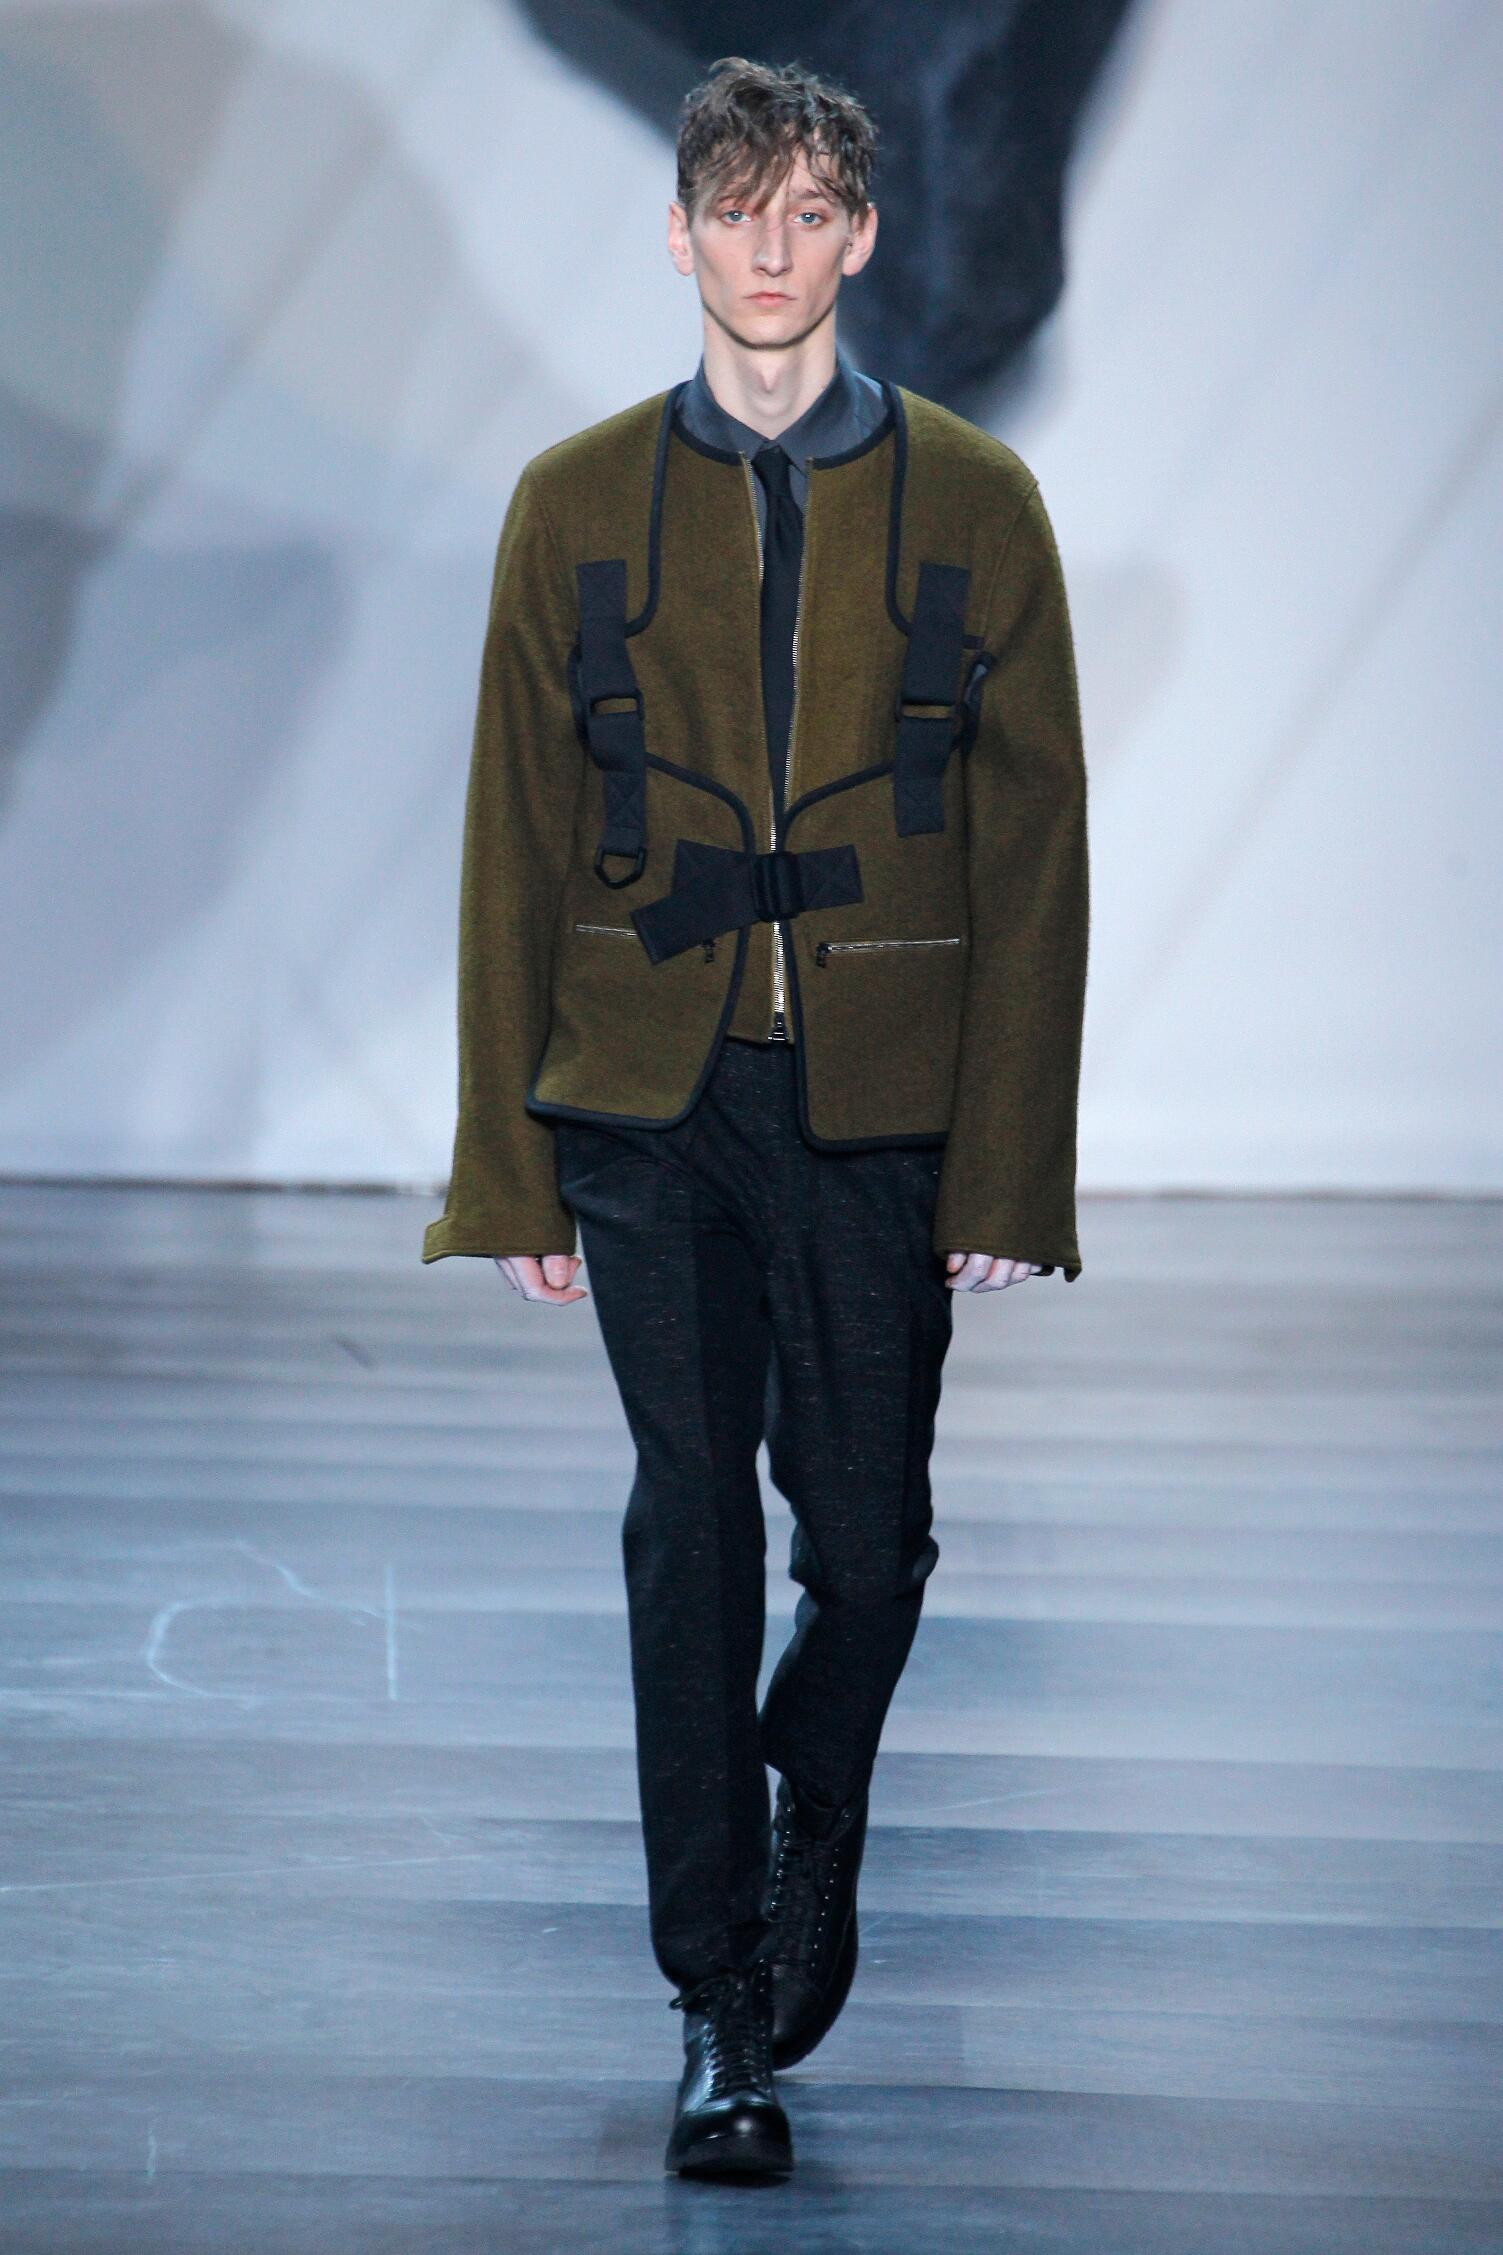 Fall Fashion Man 3.1 Phillip Lim Collection